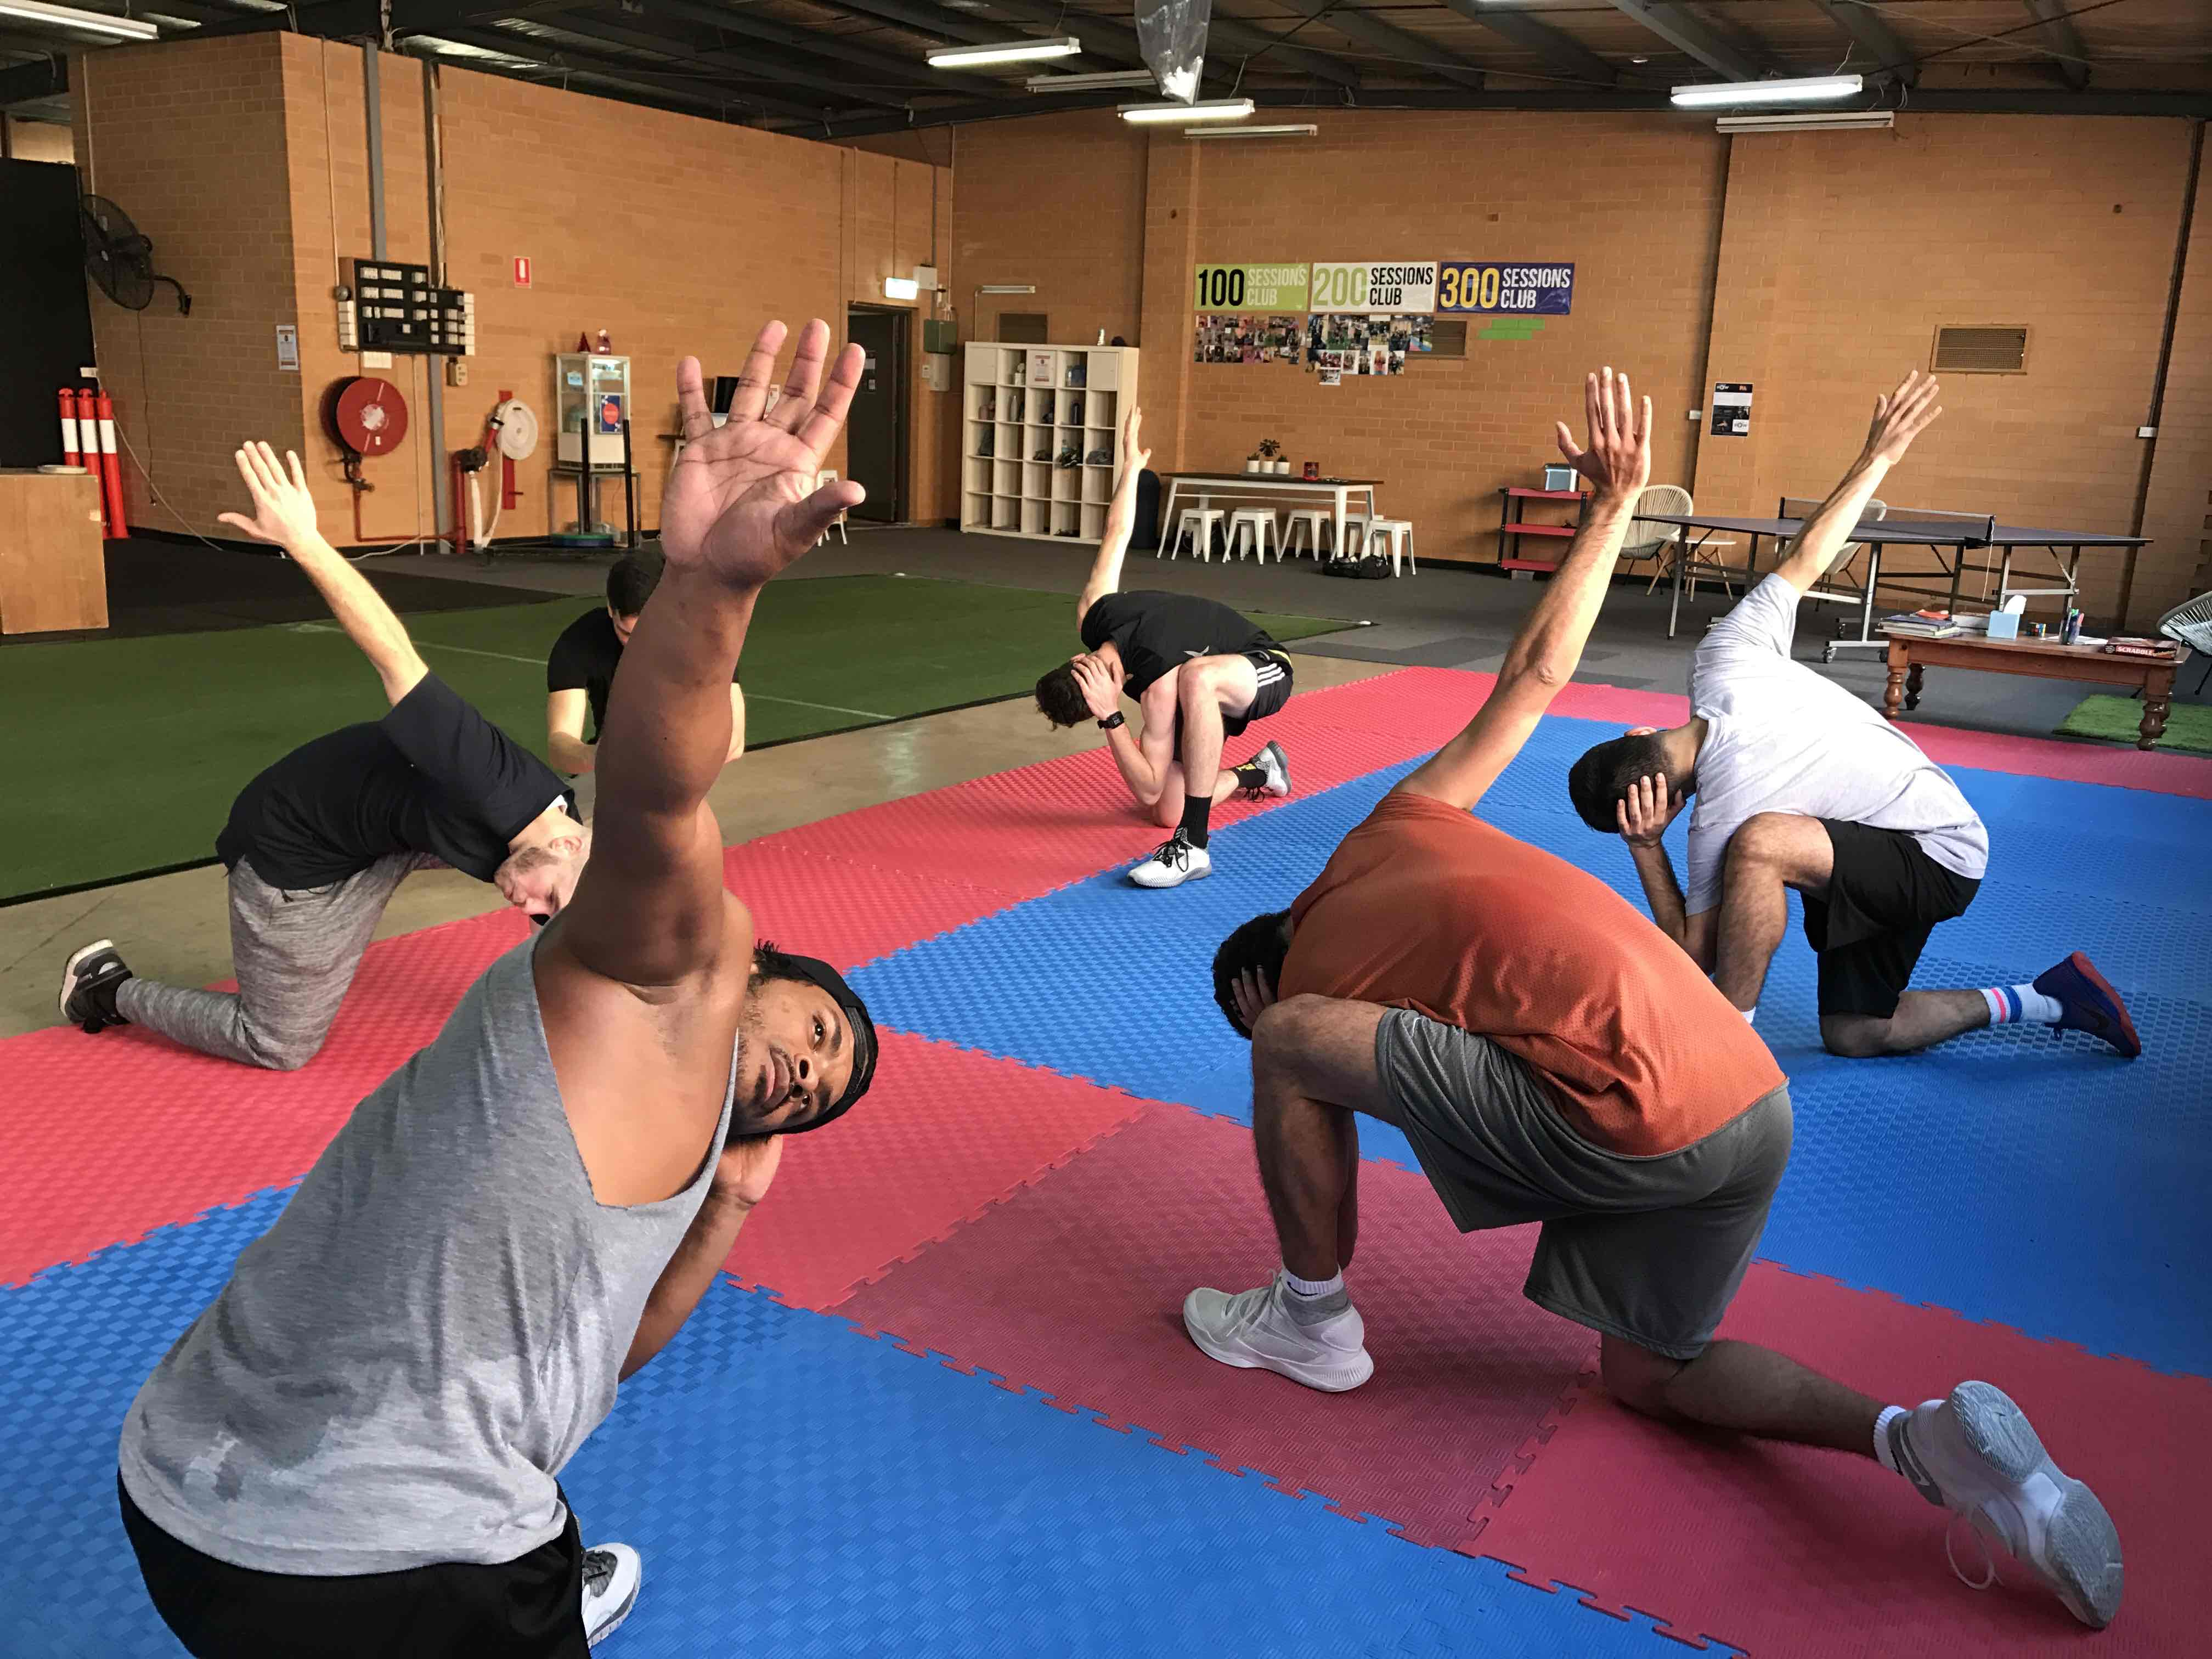 small group exercise empower health concepts rubix plyometrics mobility 2